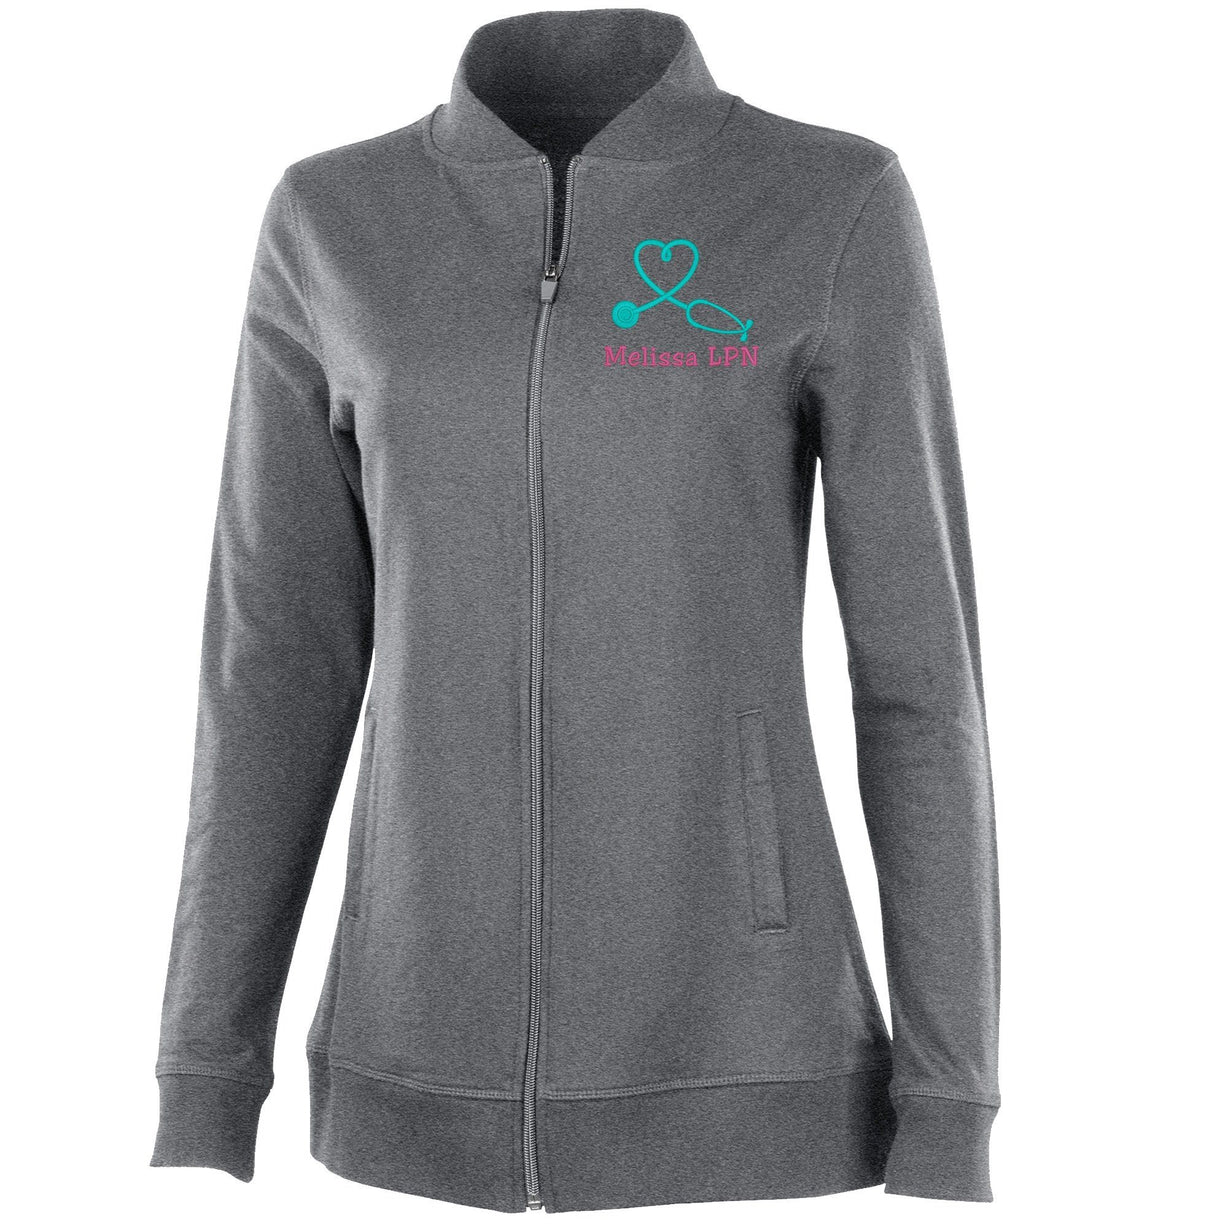 5087 | Women's Adventure Jacket | Personalized Nurse jacket